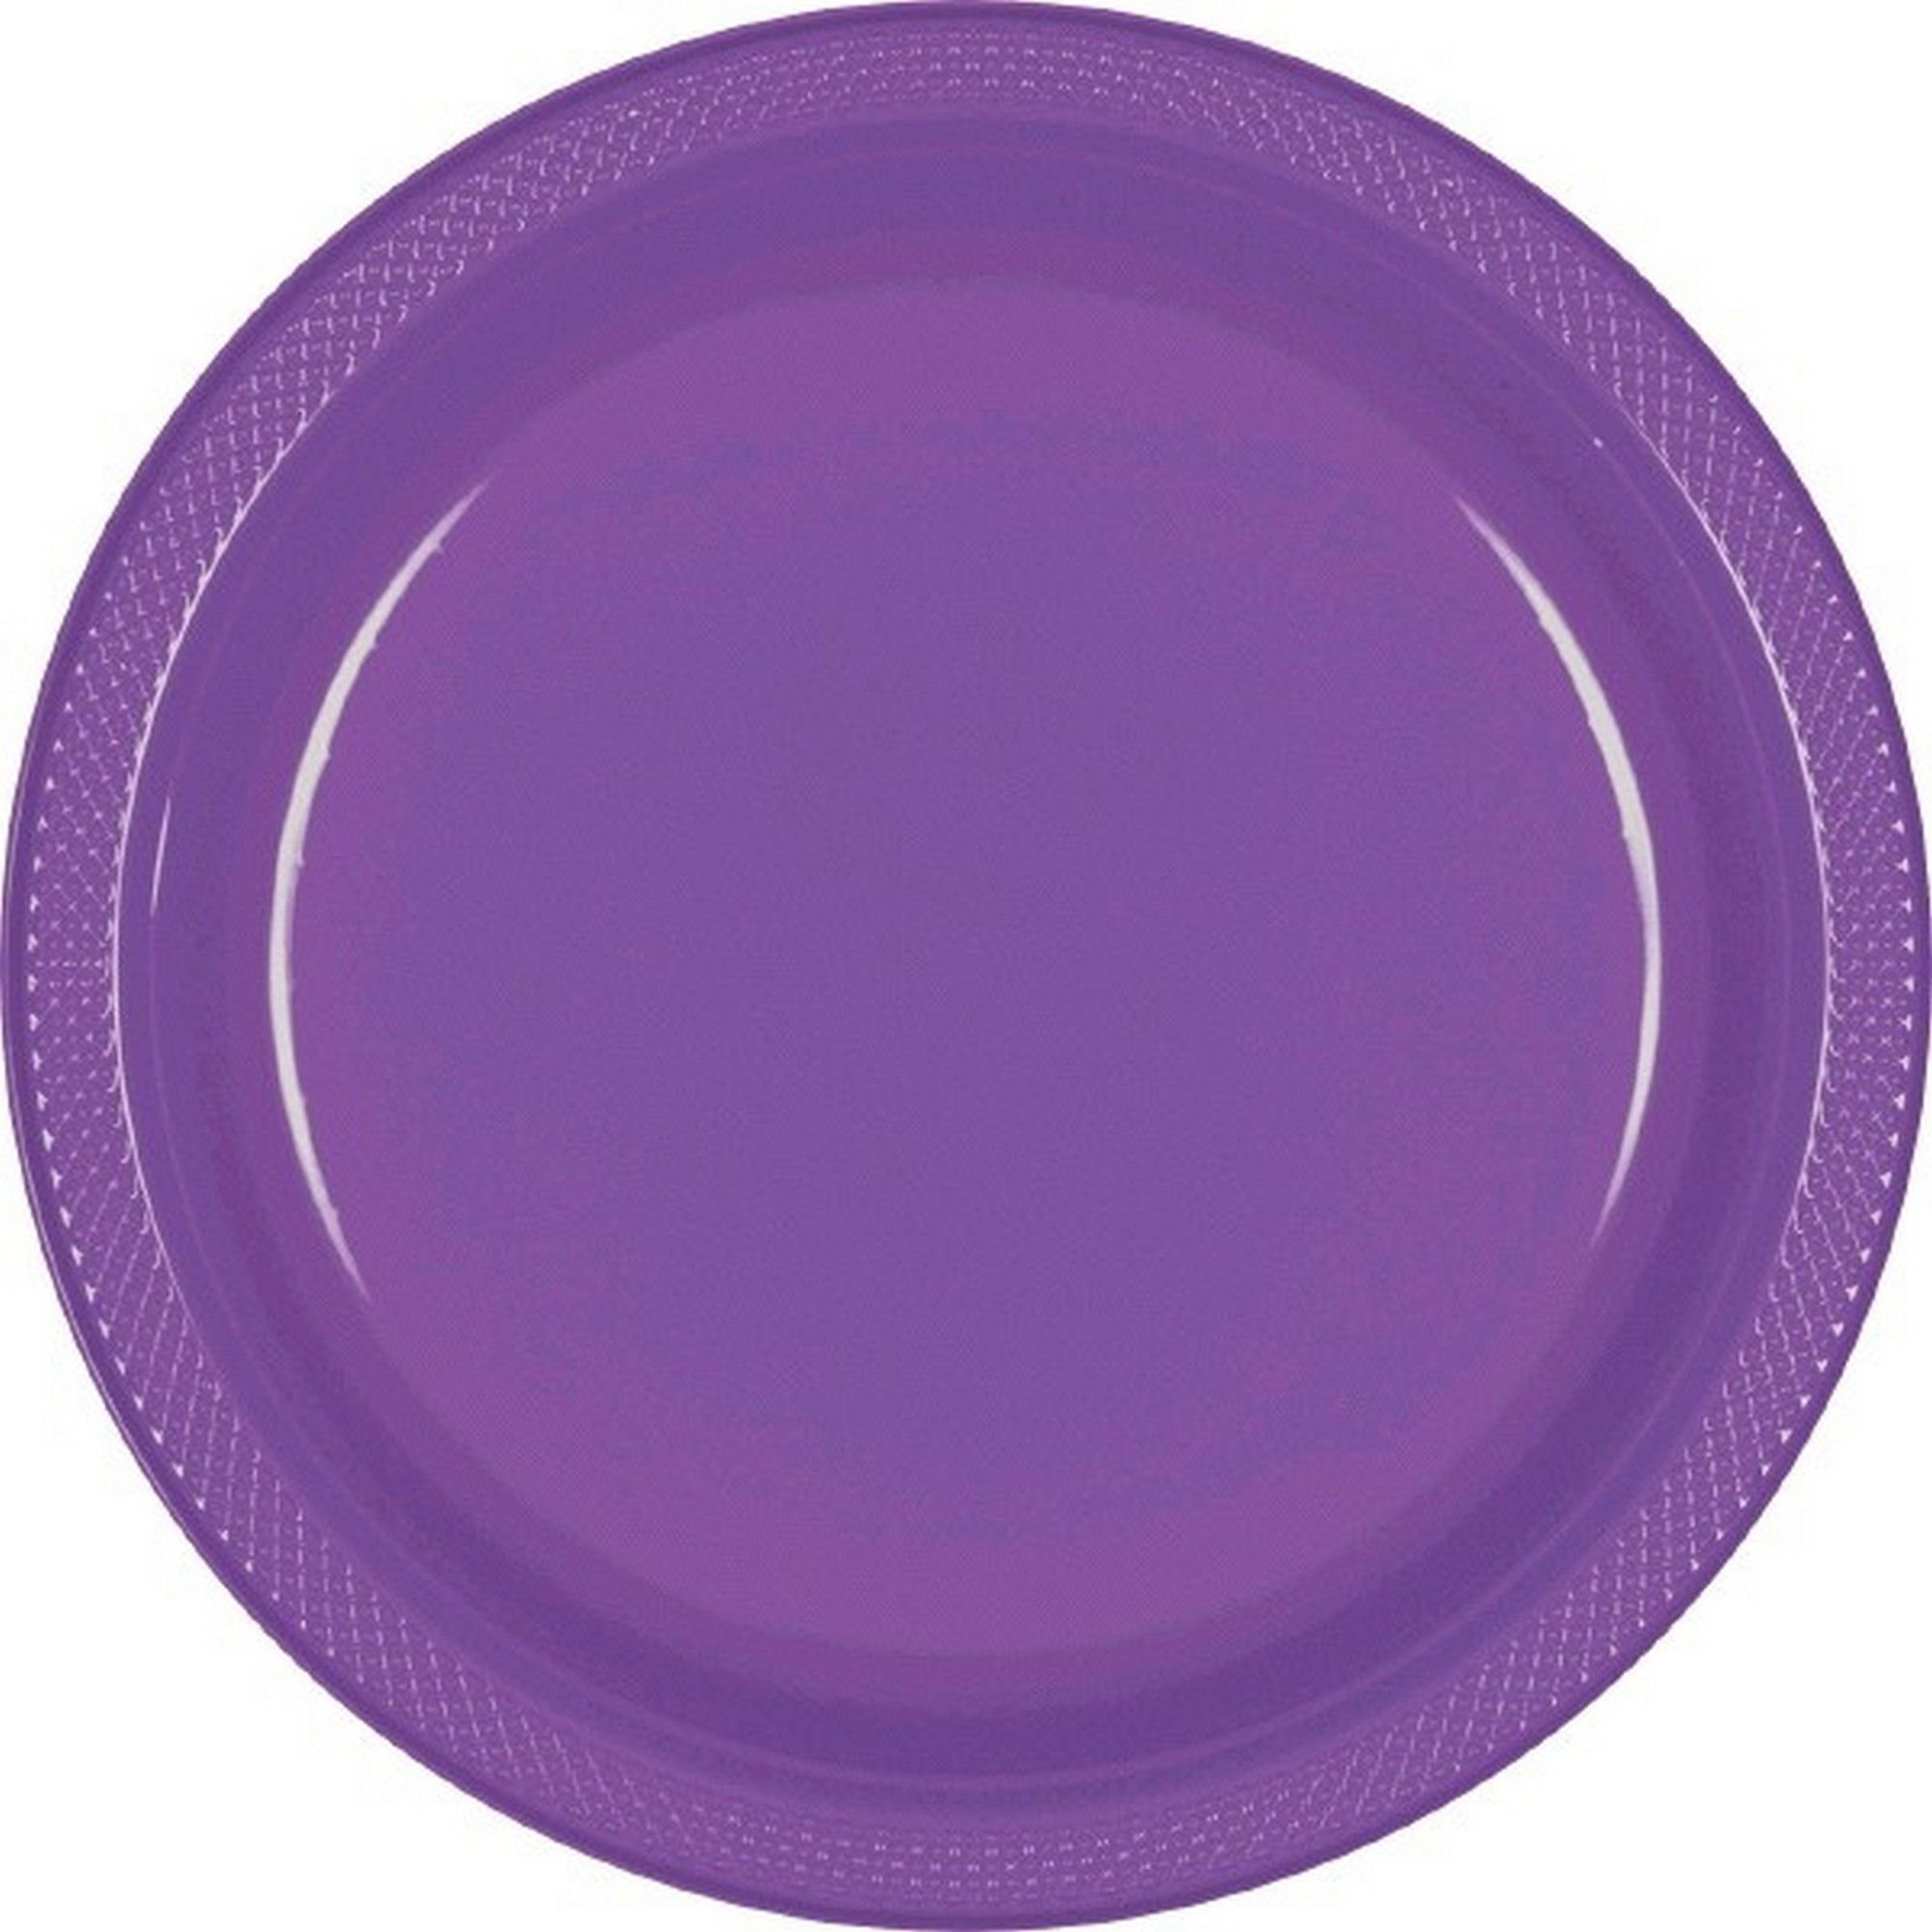 Amscan Plastic Plates. Amscan Big Party Pack 50 Count Plastic Lunch ...